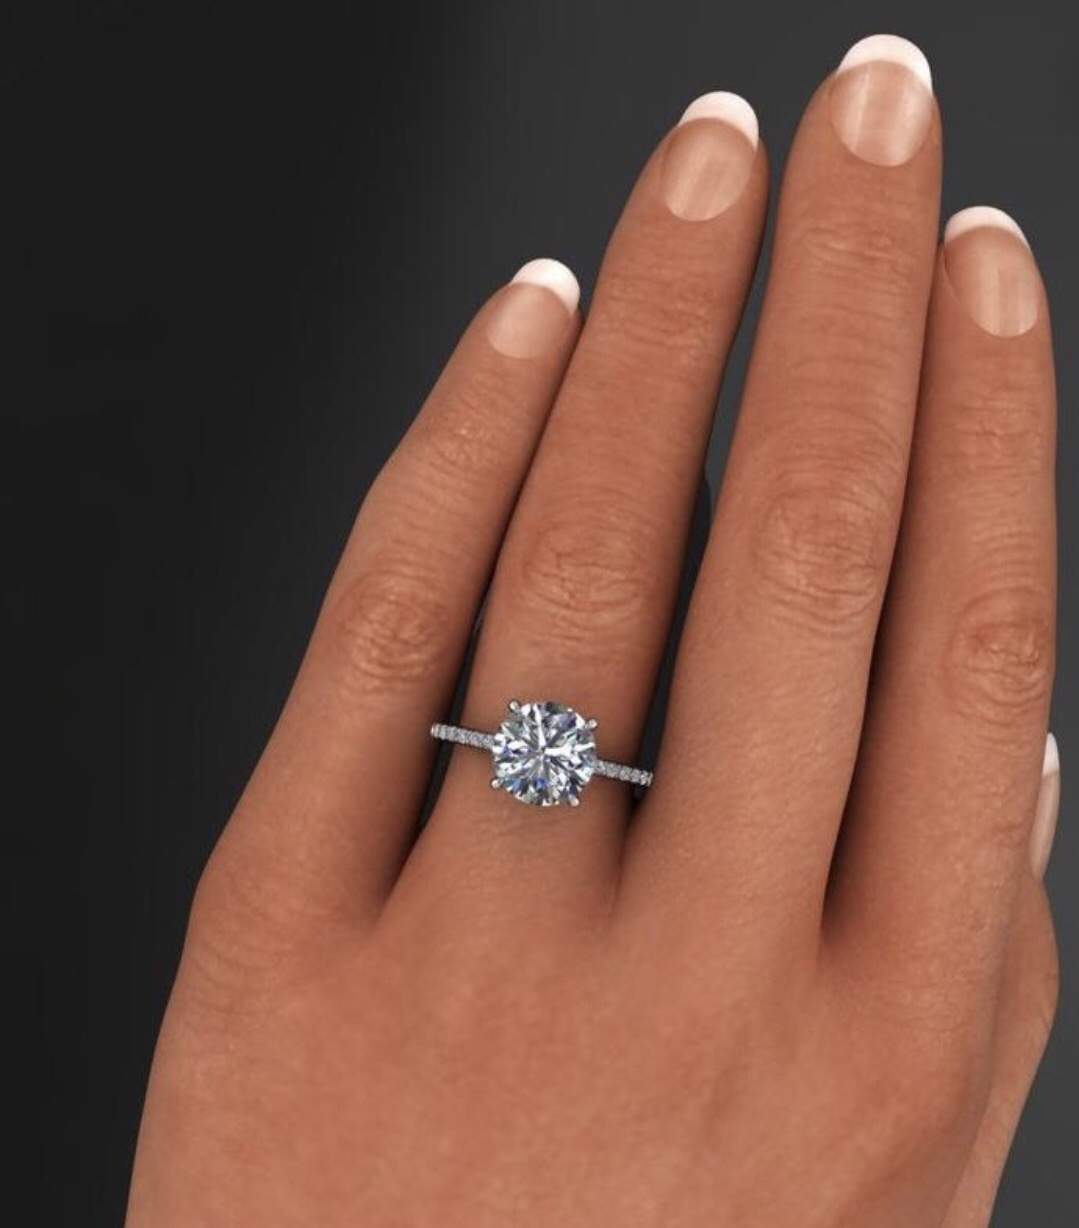 Simply stunning moissanite engagement